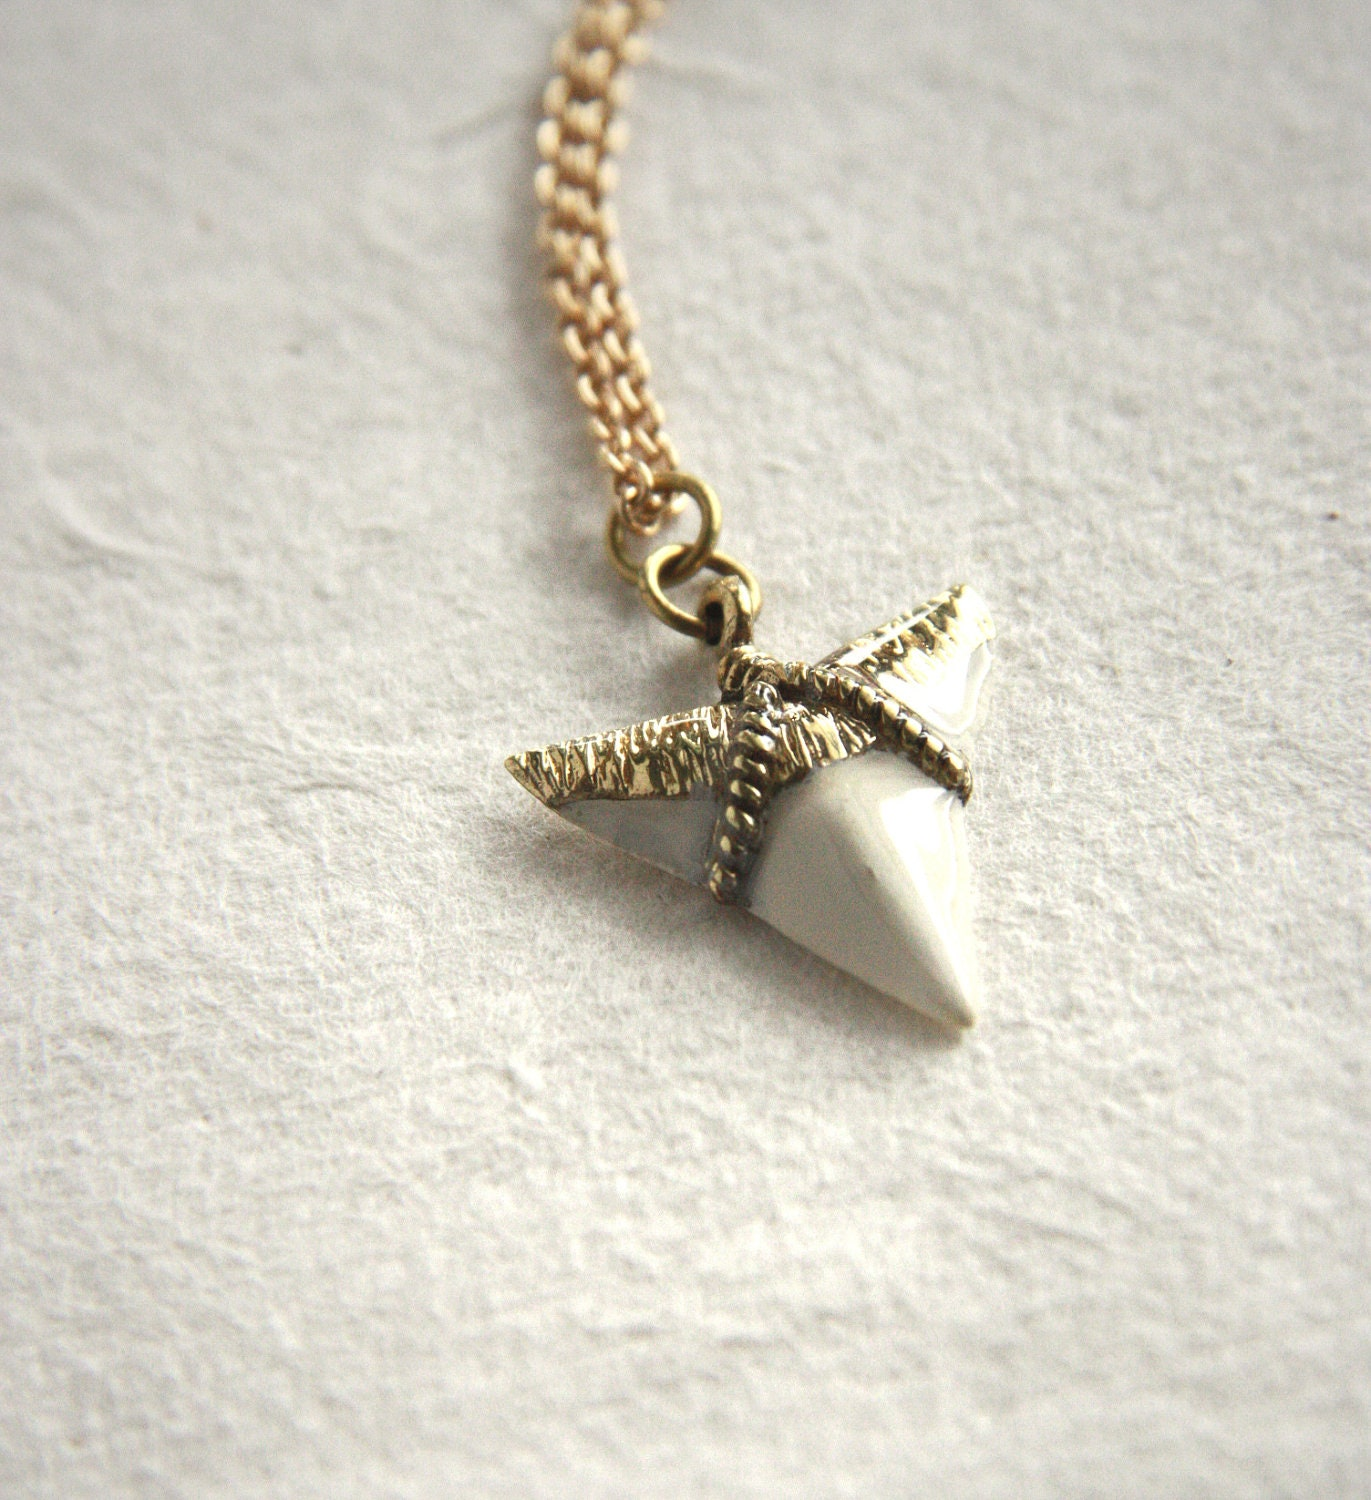 solomon necklace elisa necklaces pendant tooth shark silver sterling jewelry